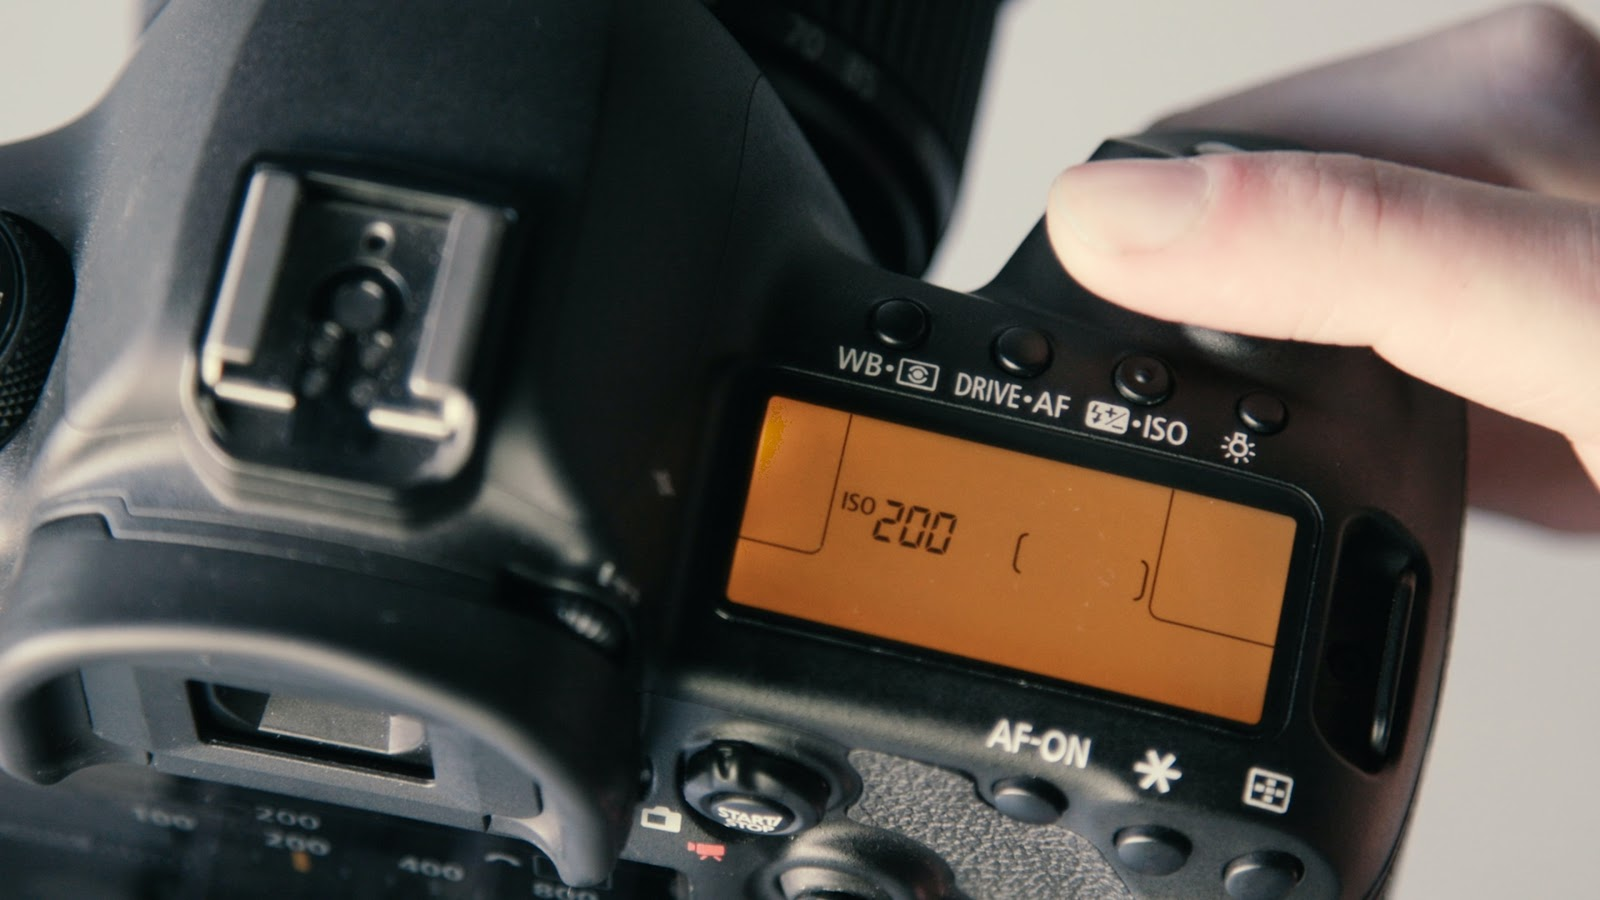 up close photo of a DSLR camera with settings displayed